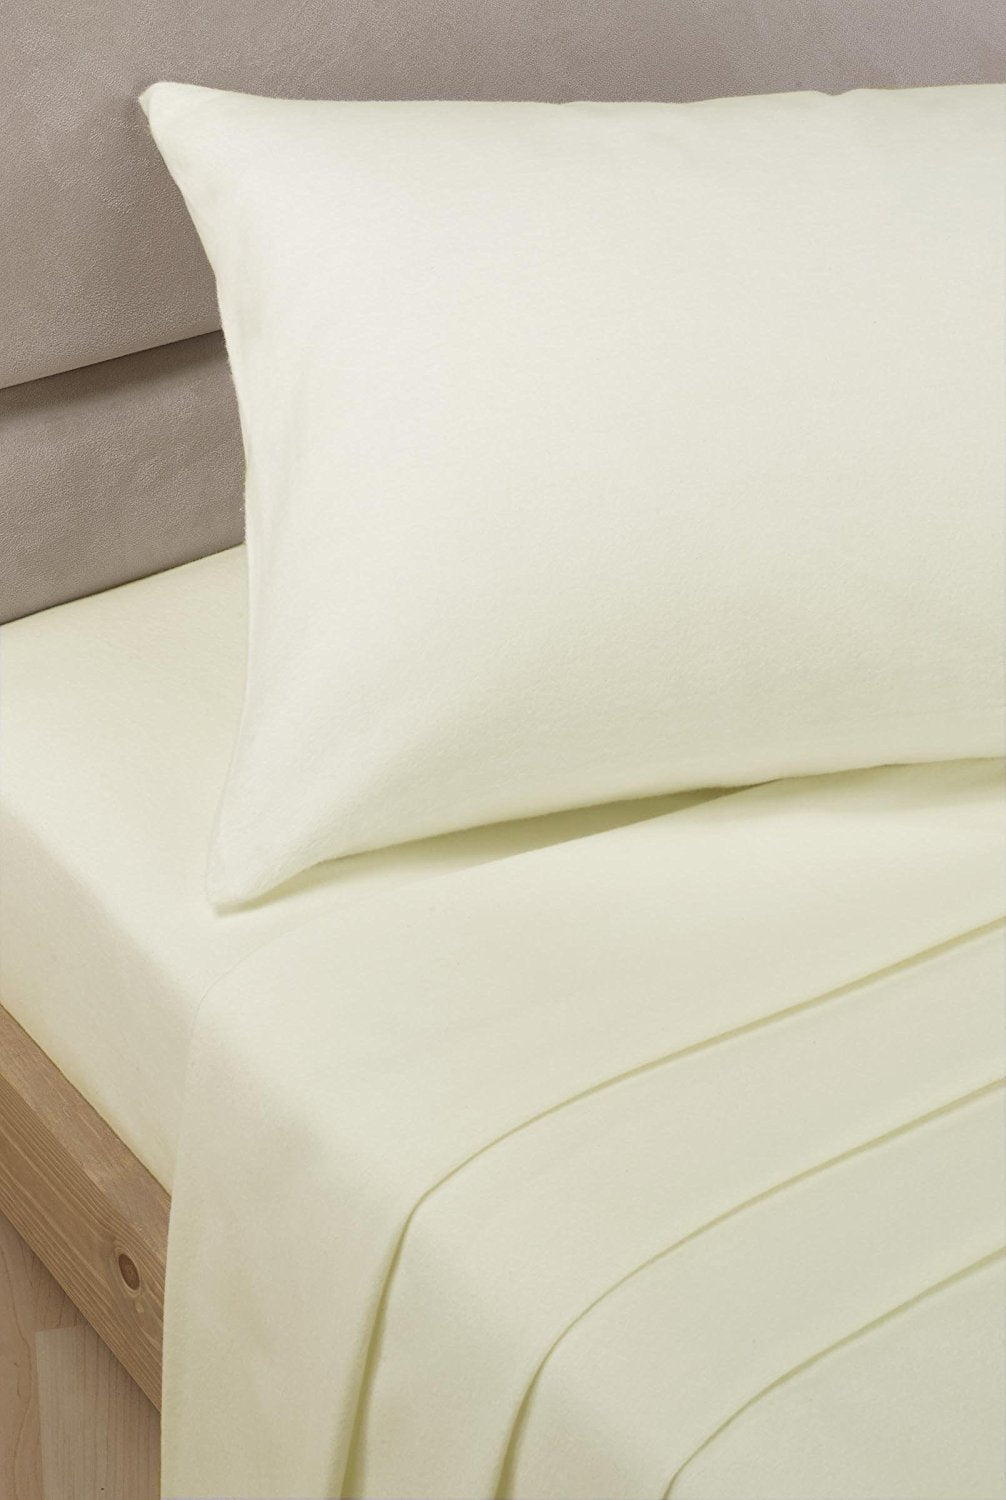 Ivory Percale Polycotton 4ft (3/4 bed) Fitted Sheet 180 TC by Rapport